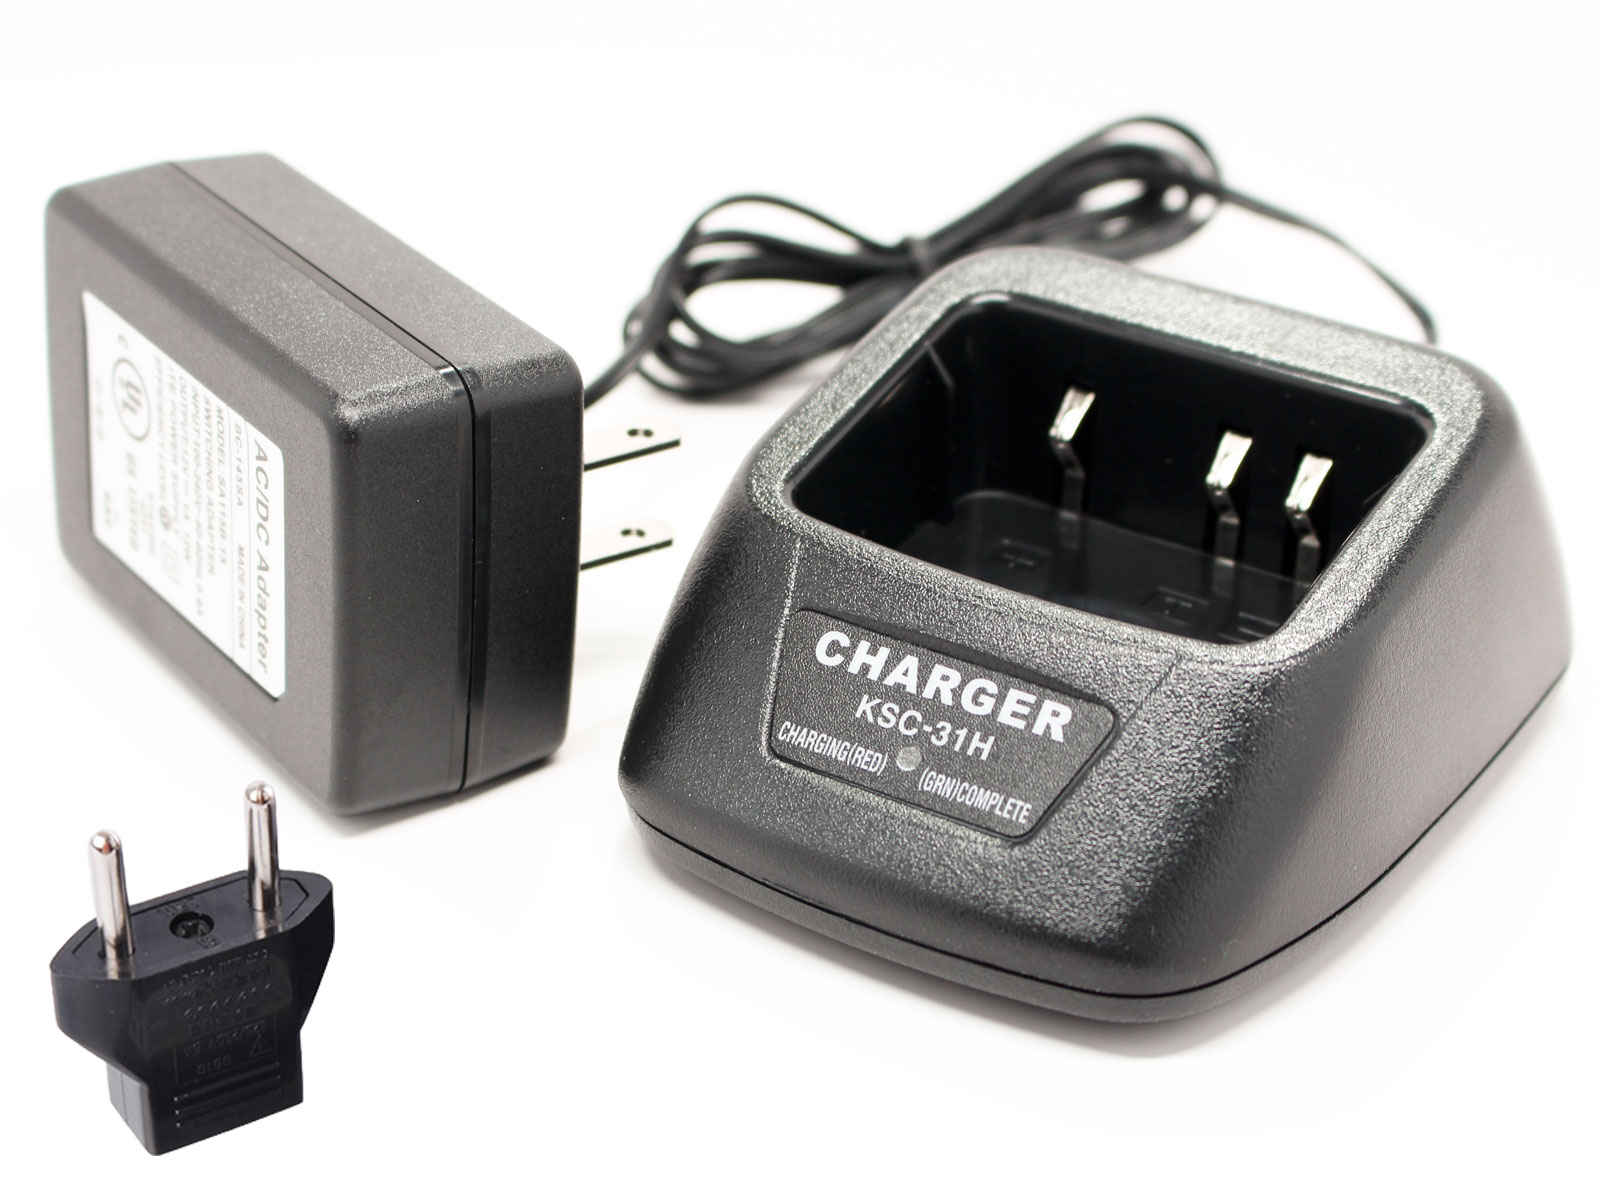 UpStart Battery Kenwood KNB-29N Charger with EU Adapter - Replacement for Kenwood KNB-29N Two-Way Radio Chargers (100-240V) at Sears.com